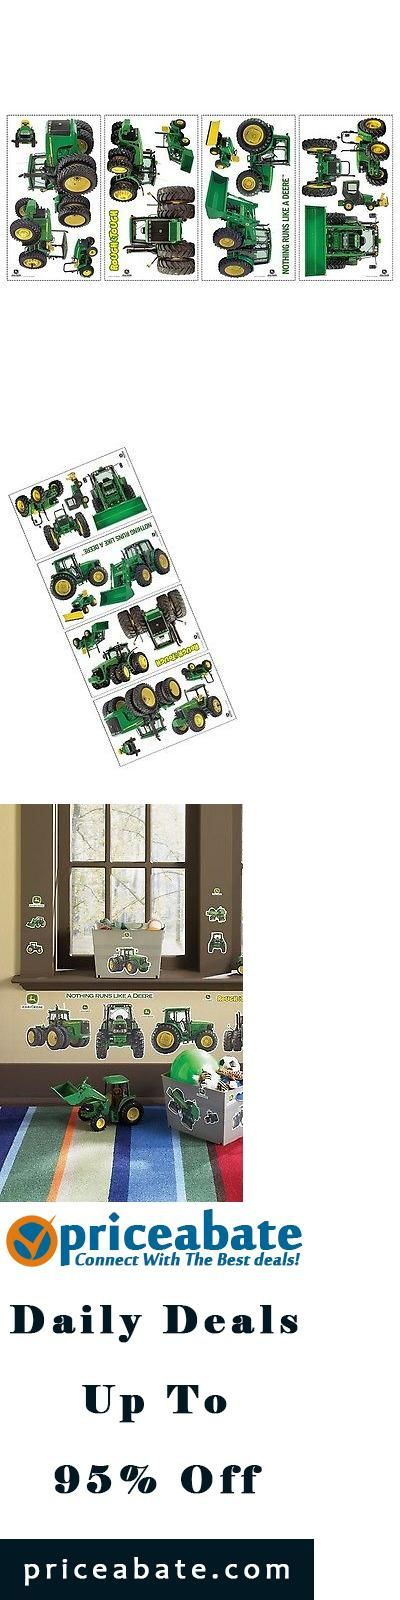 #priceabatedeals JOHN DEERE Big Removable Wall Decals FARM TRACTOR BOYS Room Decor Stickers LOGO - Buy This Item Now For Only: $21.9